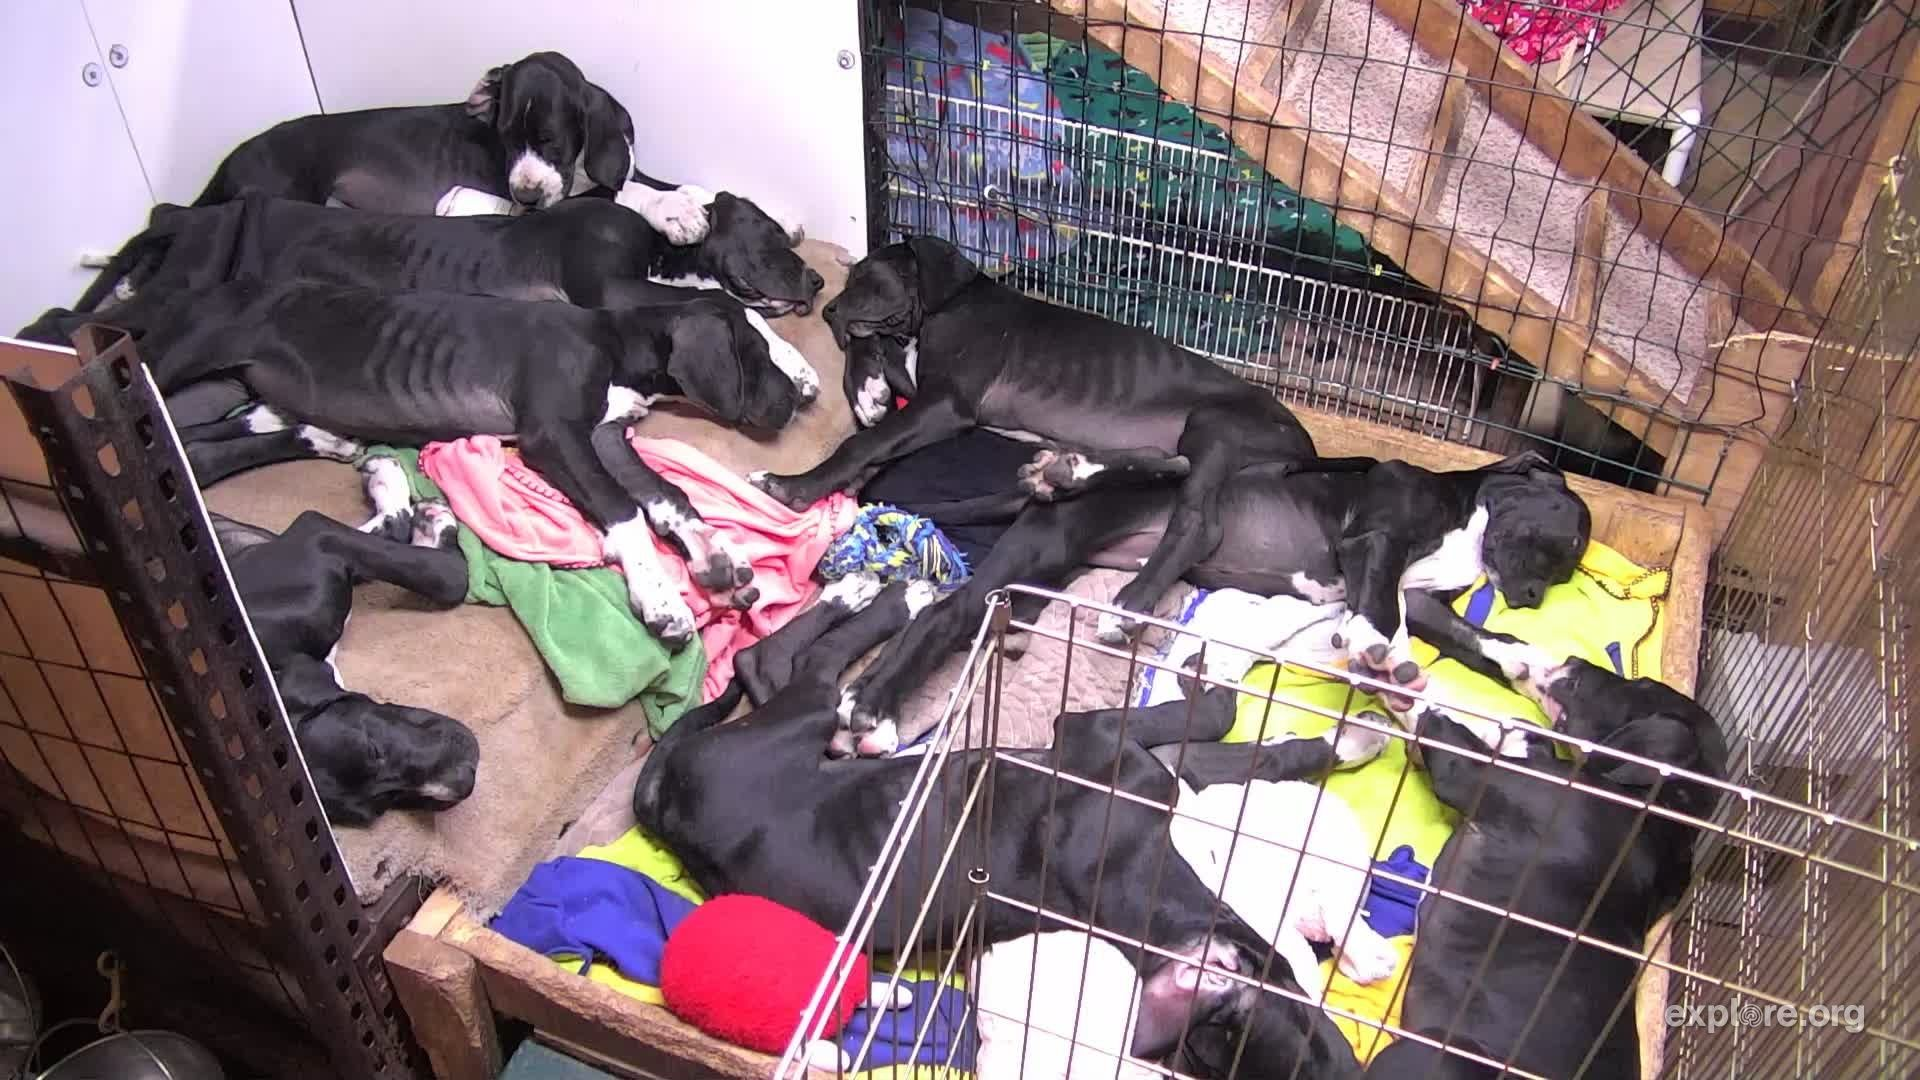 I'm watching the Indoor Puppy Room live cam on explore